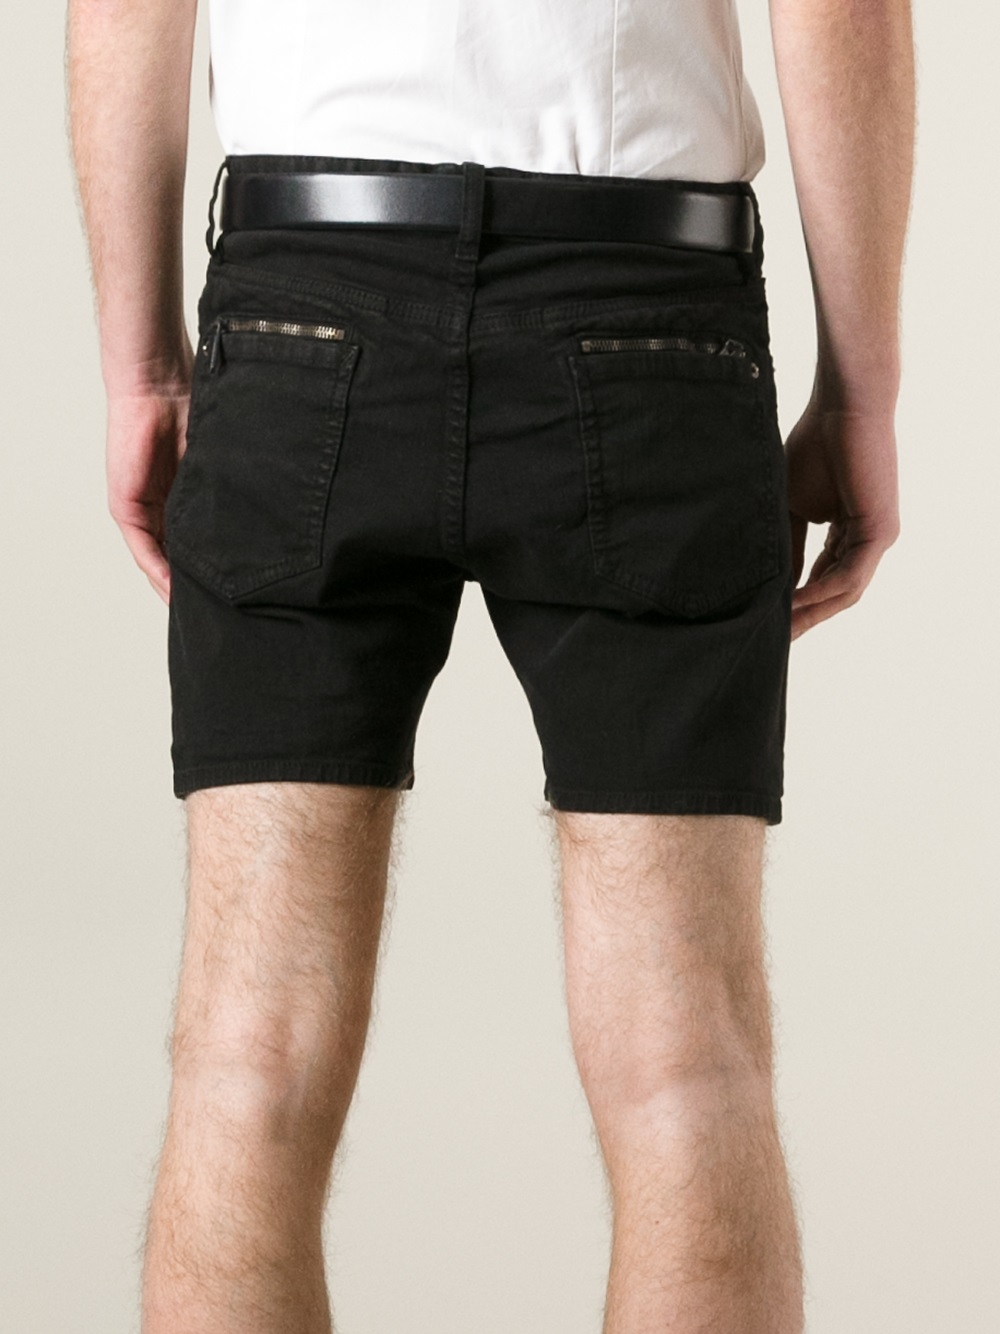 Black jeans shorts mens – Global fashion jeans models